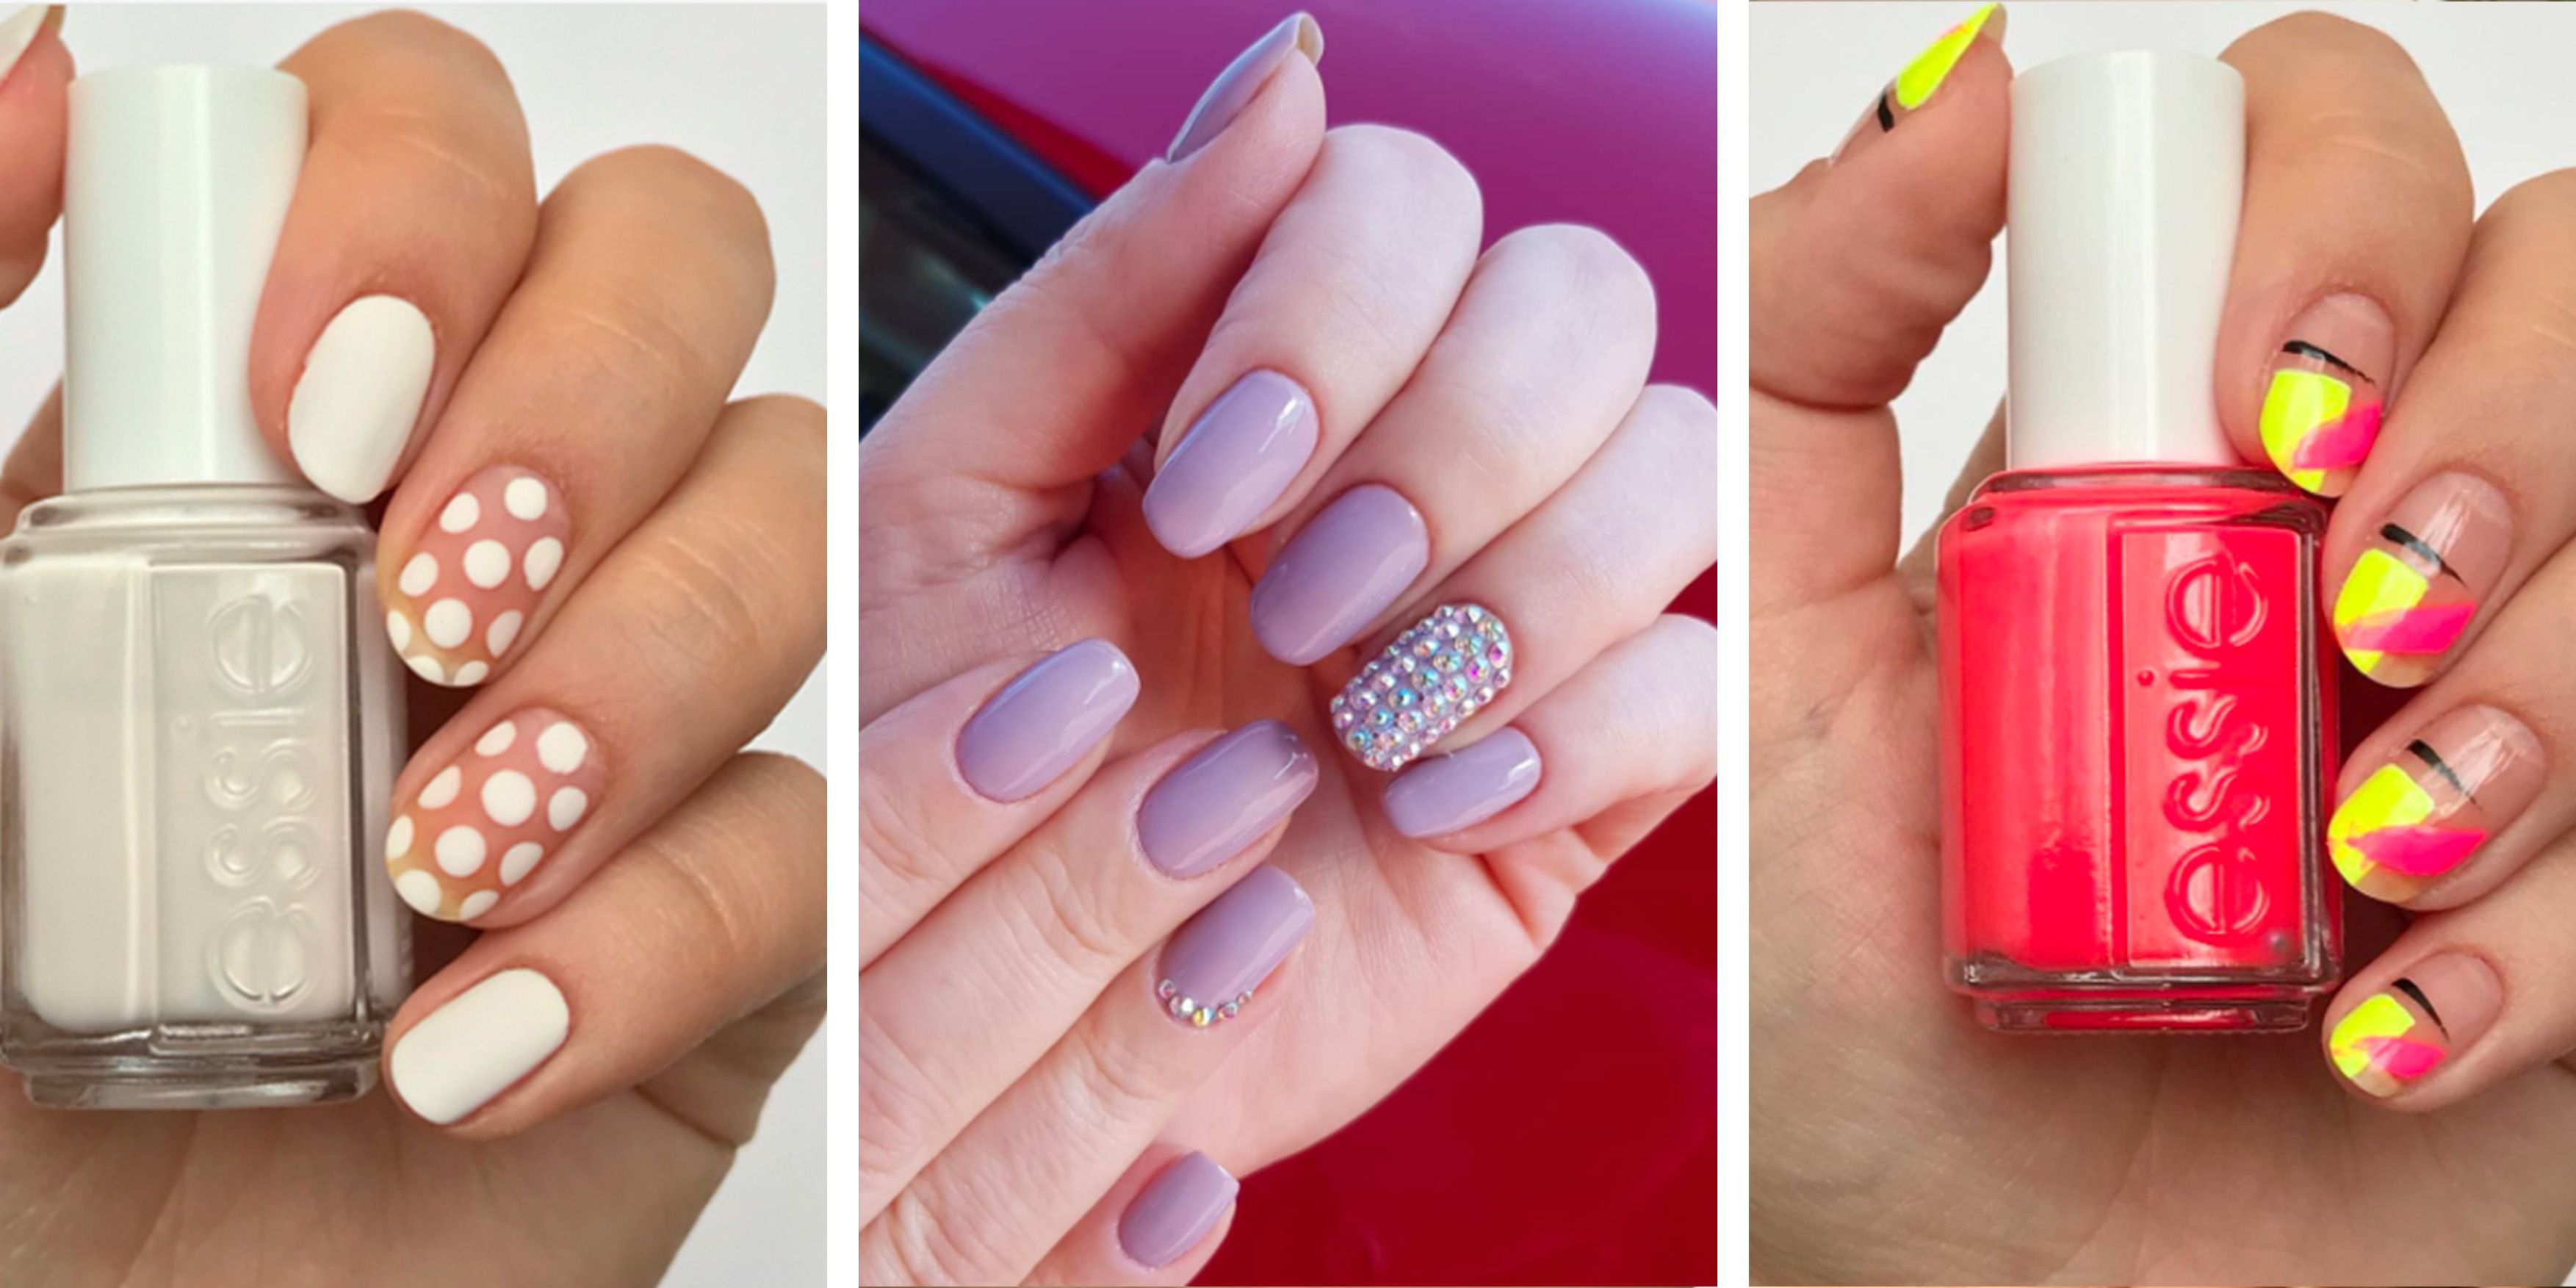 40 Best Nail Designs Of 2020 Nail Art Trends To Try This Year